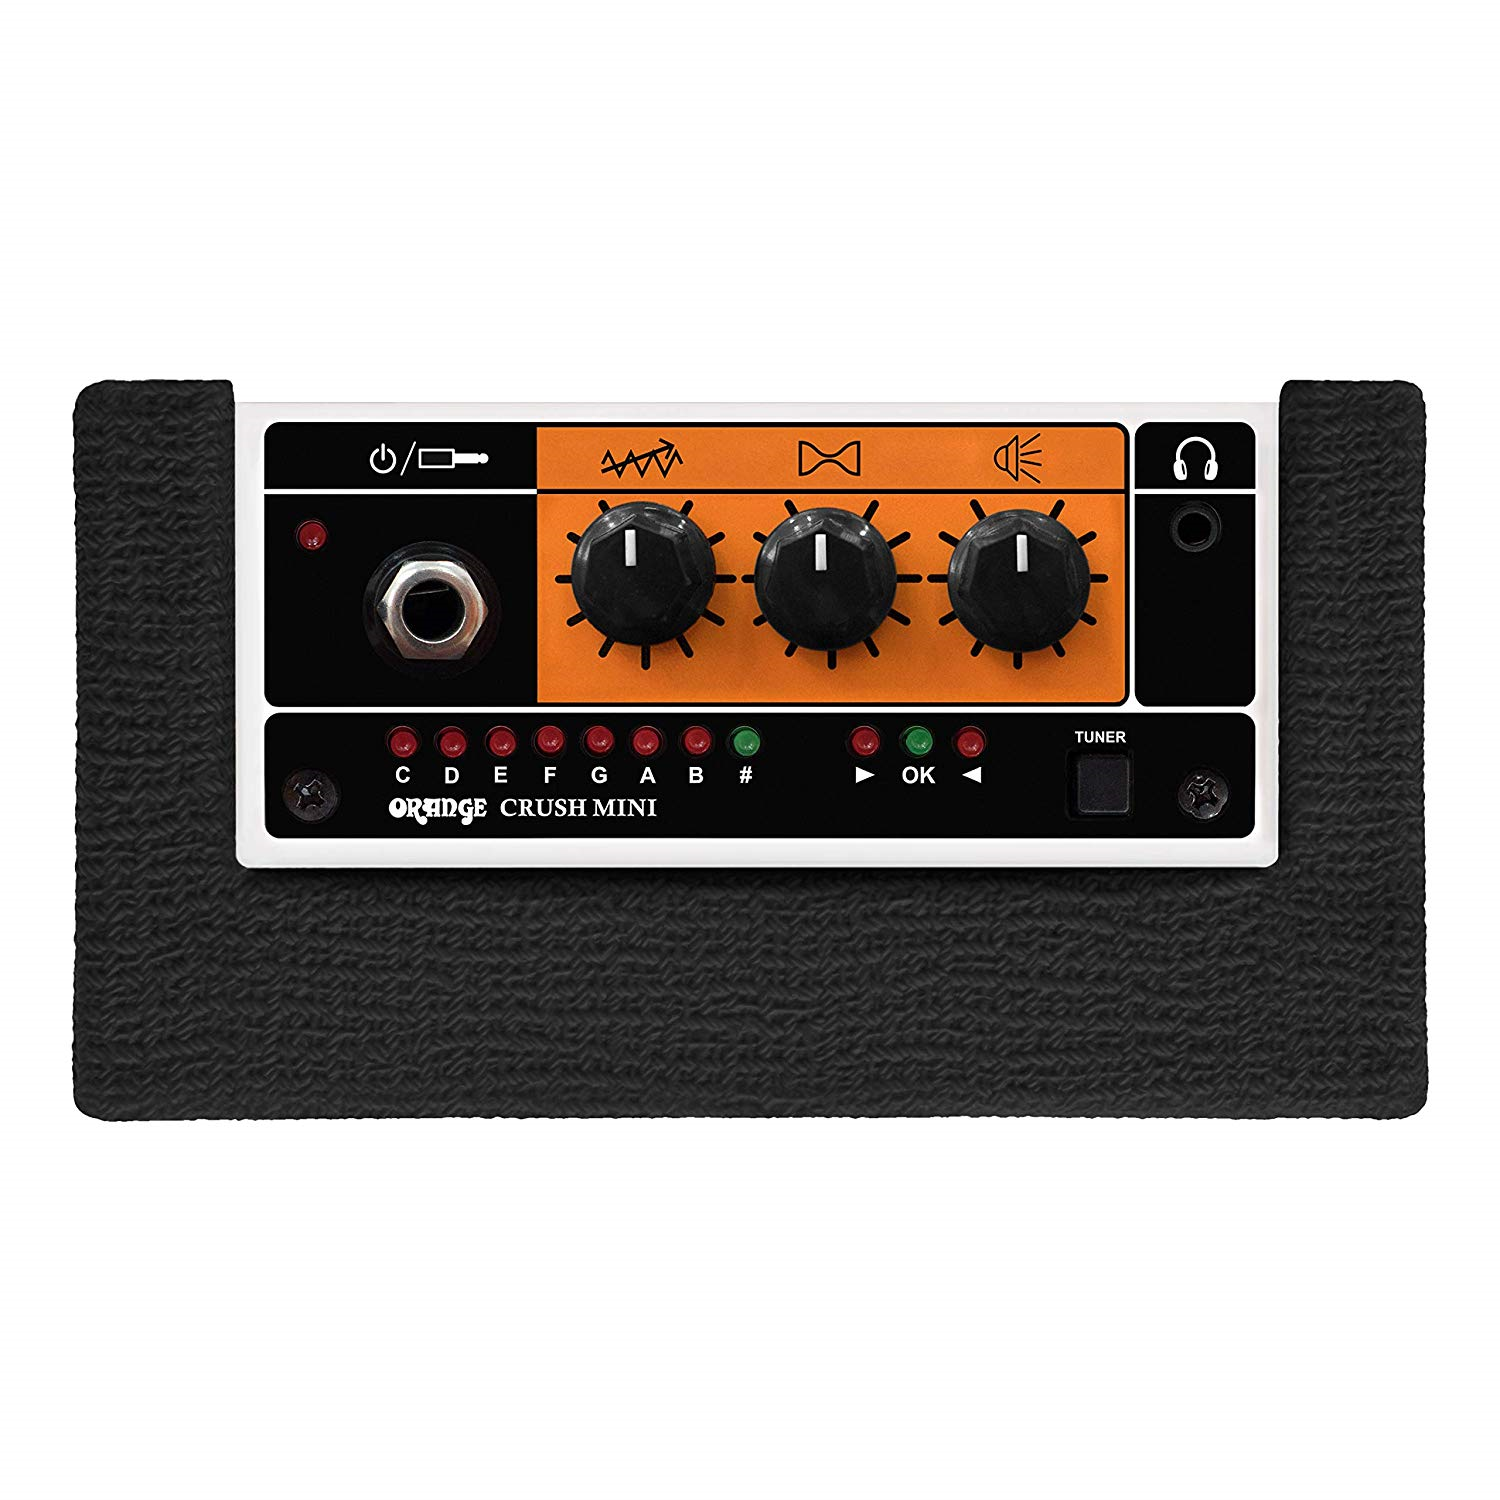 Control Knobs on The Orange Crush Black Bundle Mini Amplifier